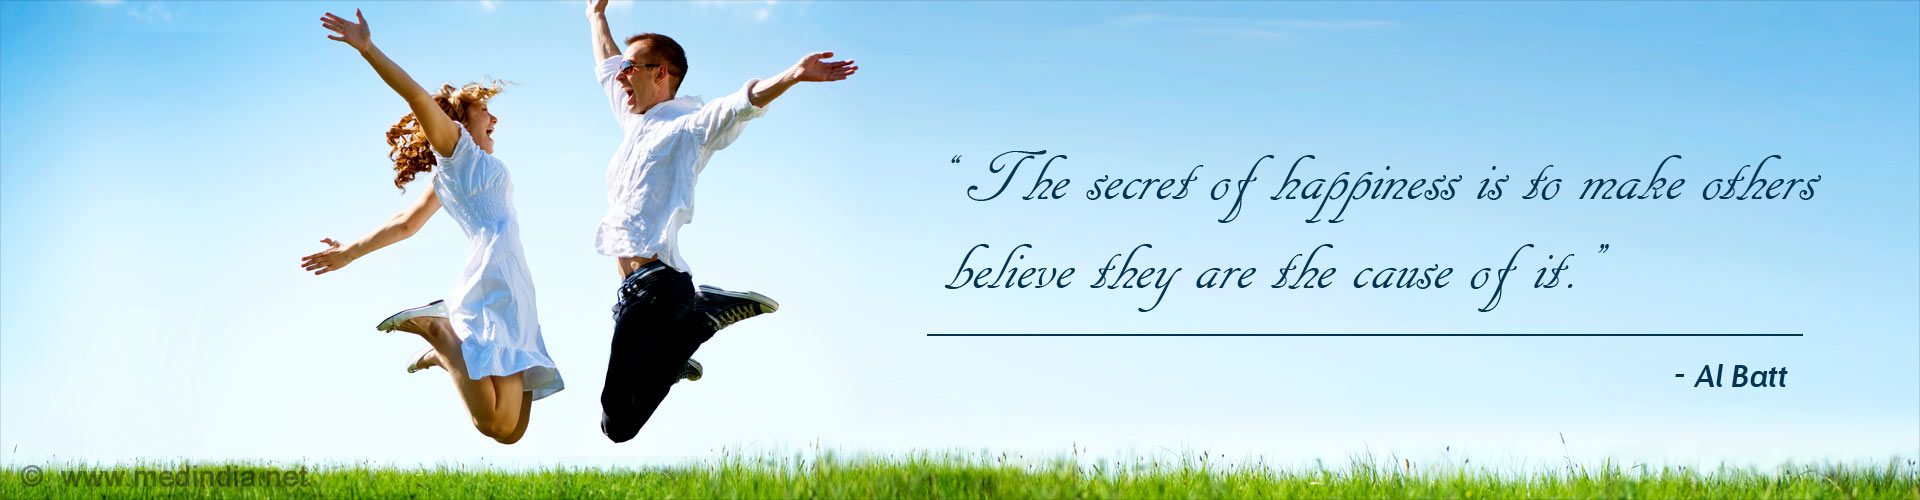 The secret of happiness is to make others believe they are the cause of it. - Al Batt